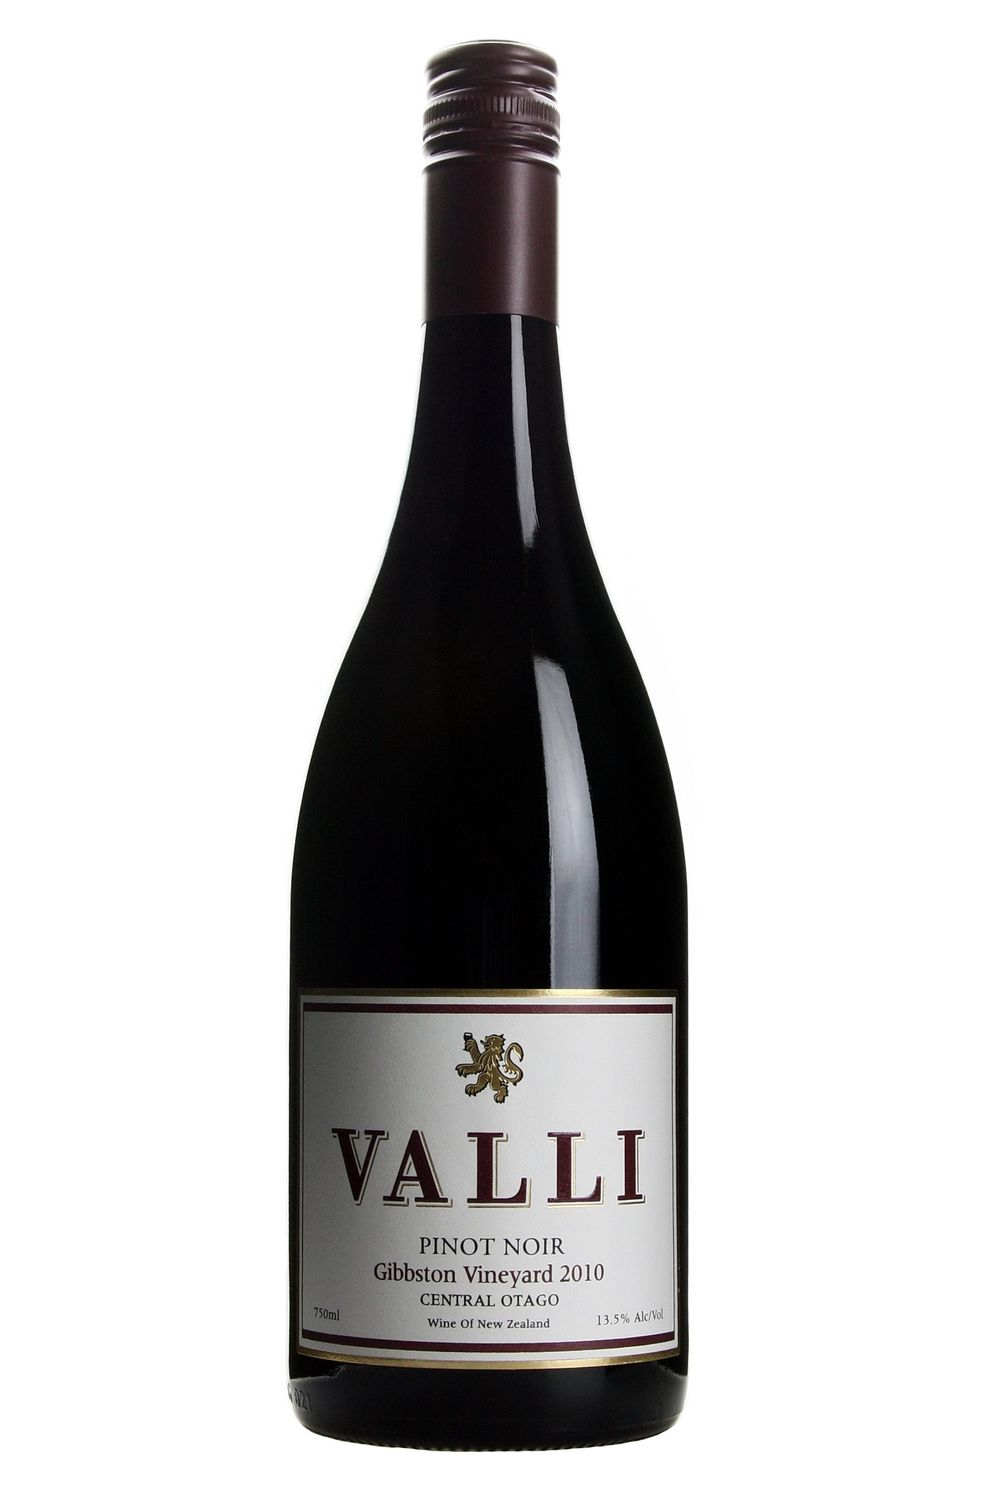 Valli Pinot Noir 2010 Gibbston